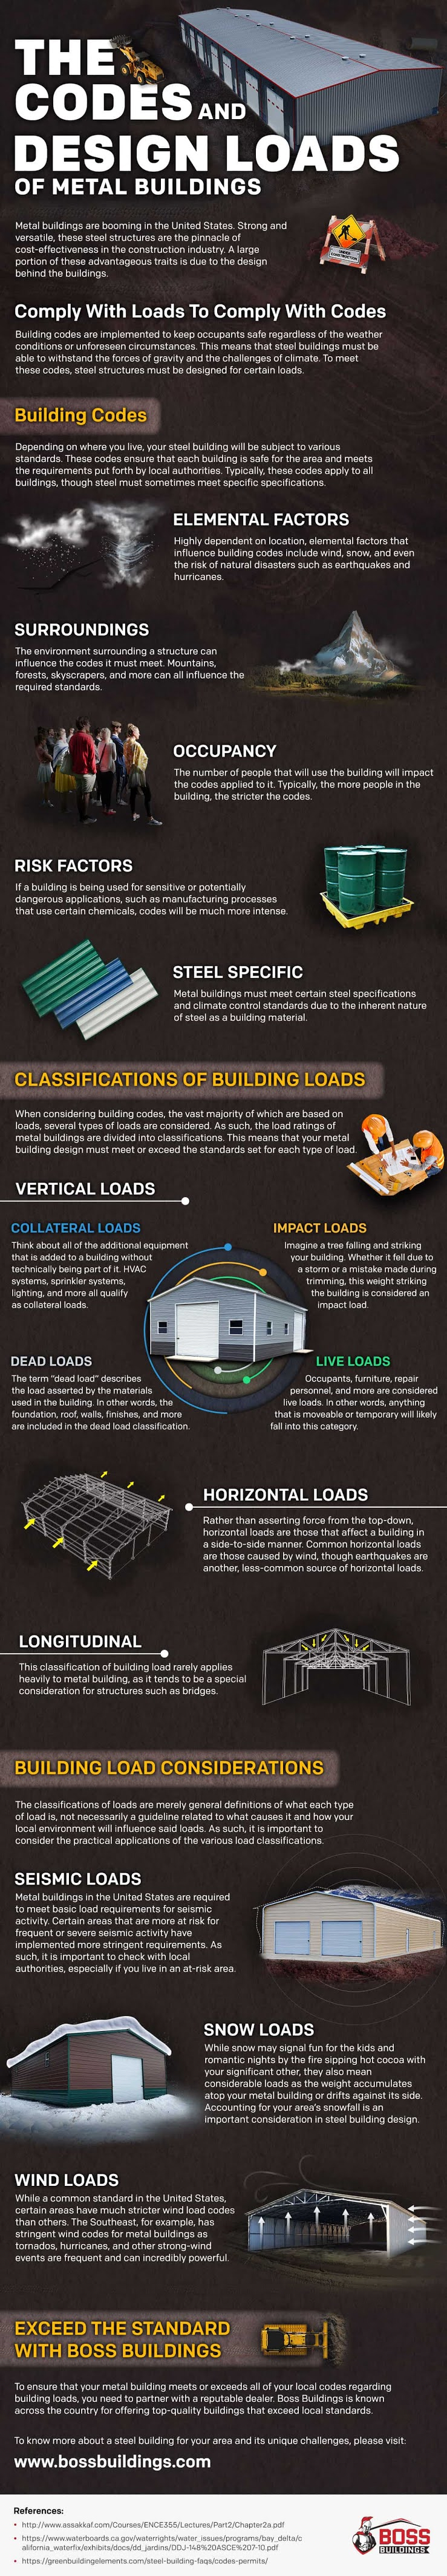 The Codes and Design Loads of Metal Buildings #infographic #Home Improvement #Metal Buildings